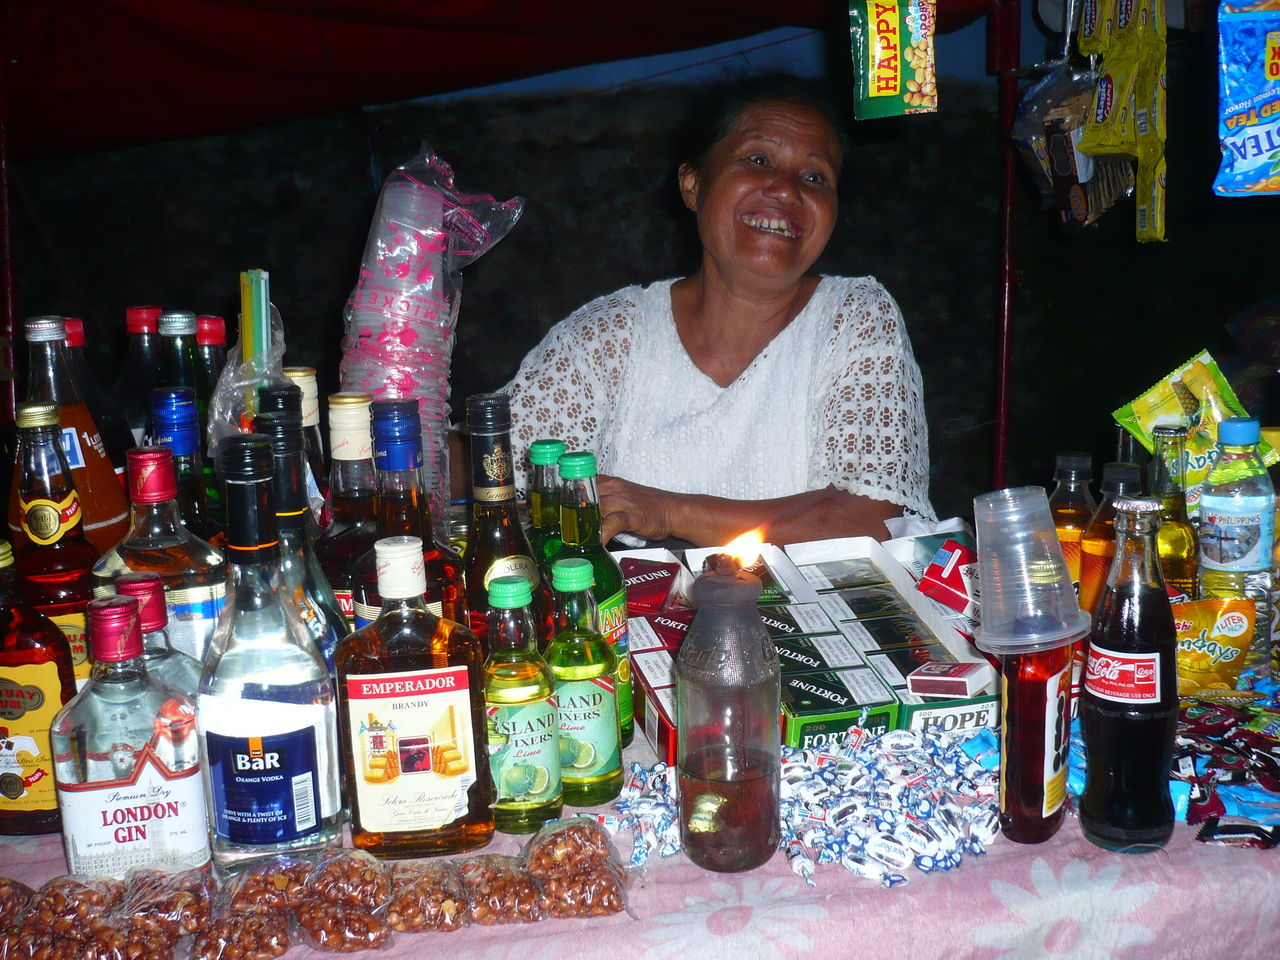 Alcohol Booze Bottle Cheerful Drink Fiesta Siquijor, Philippines Smiling